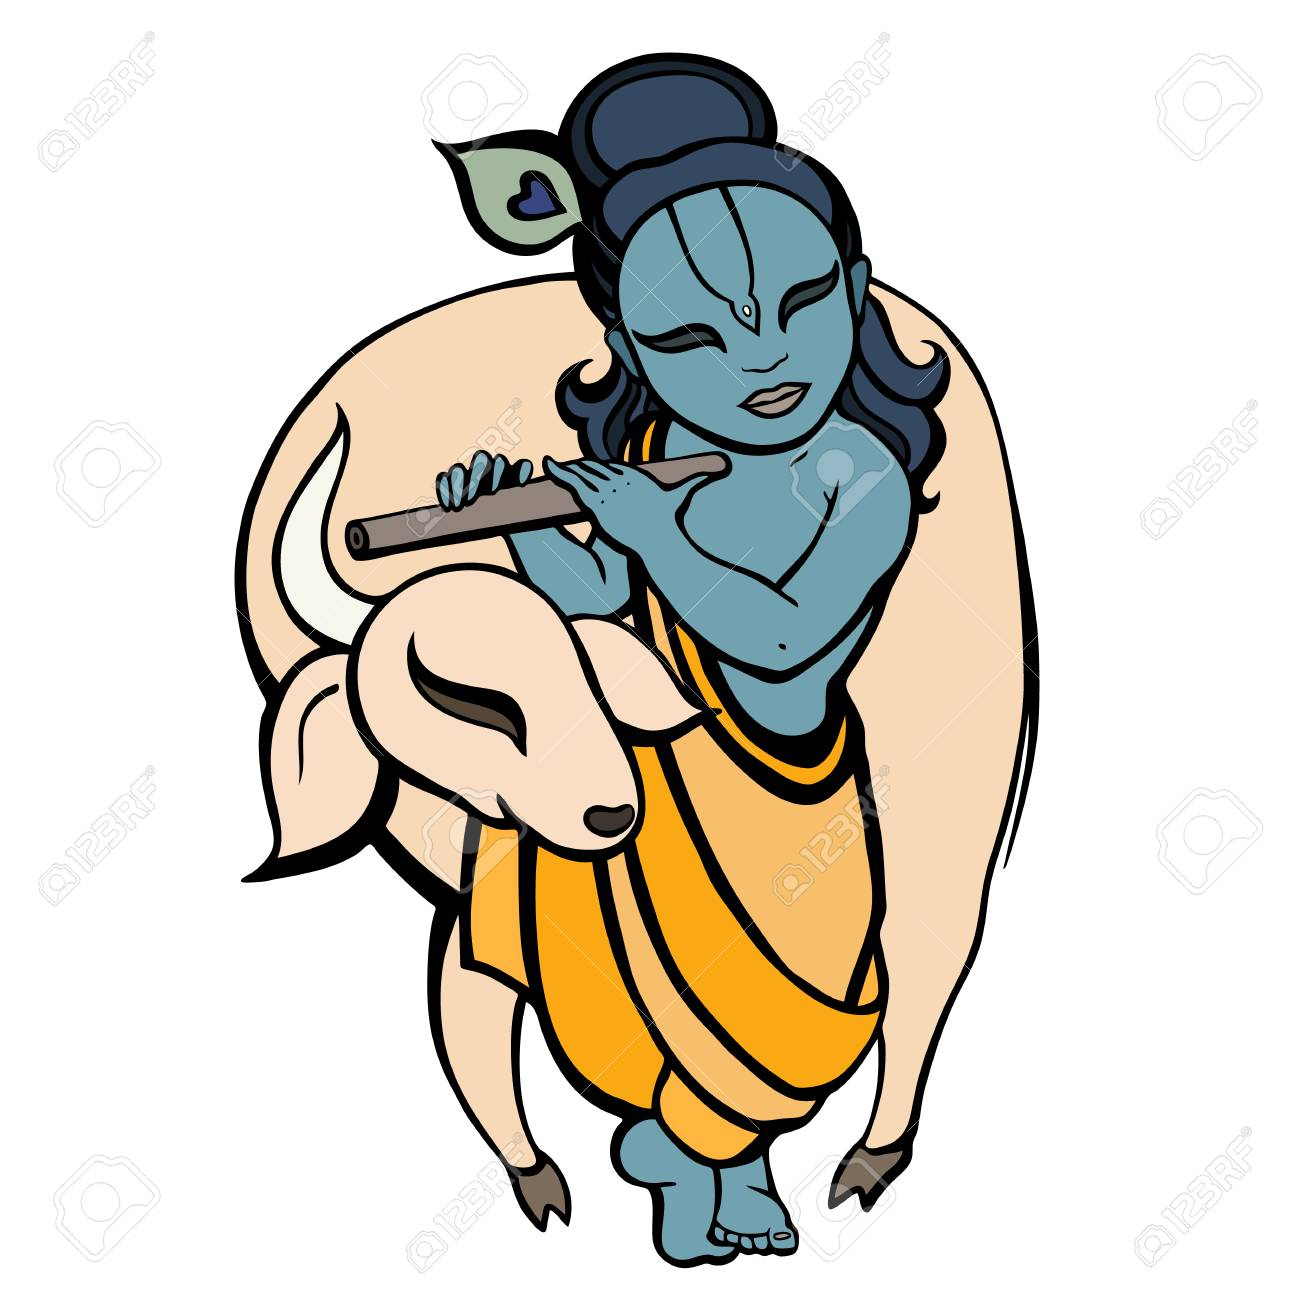 91694555 hindu god krishna playing flute behind bull religion symbol vector illustration